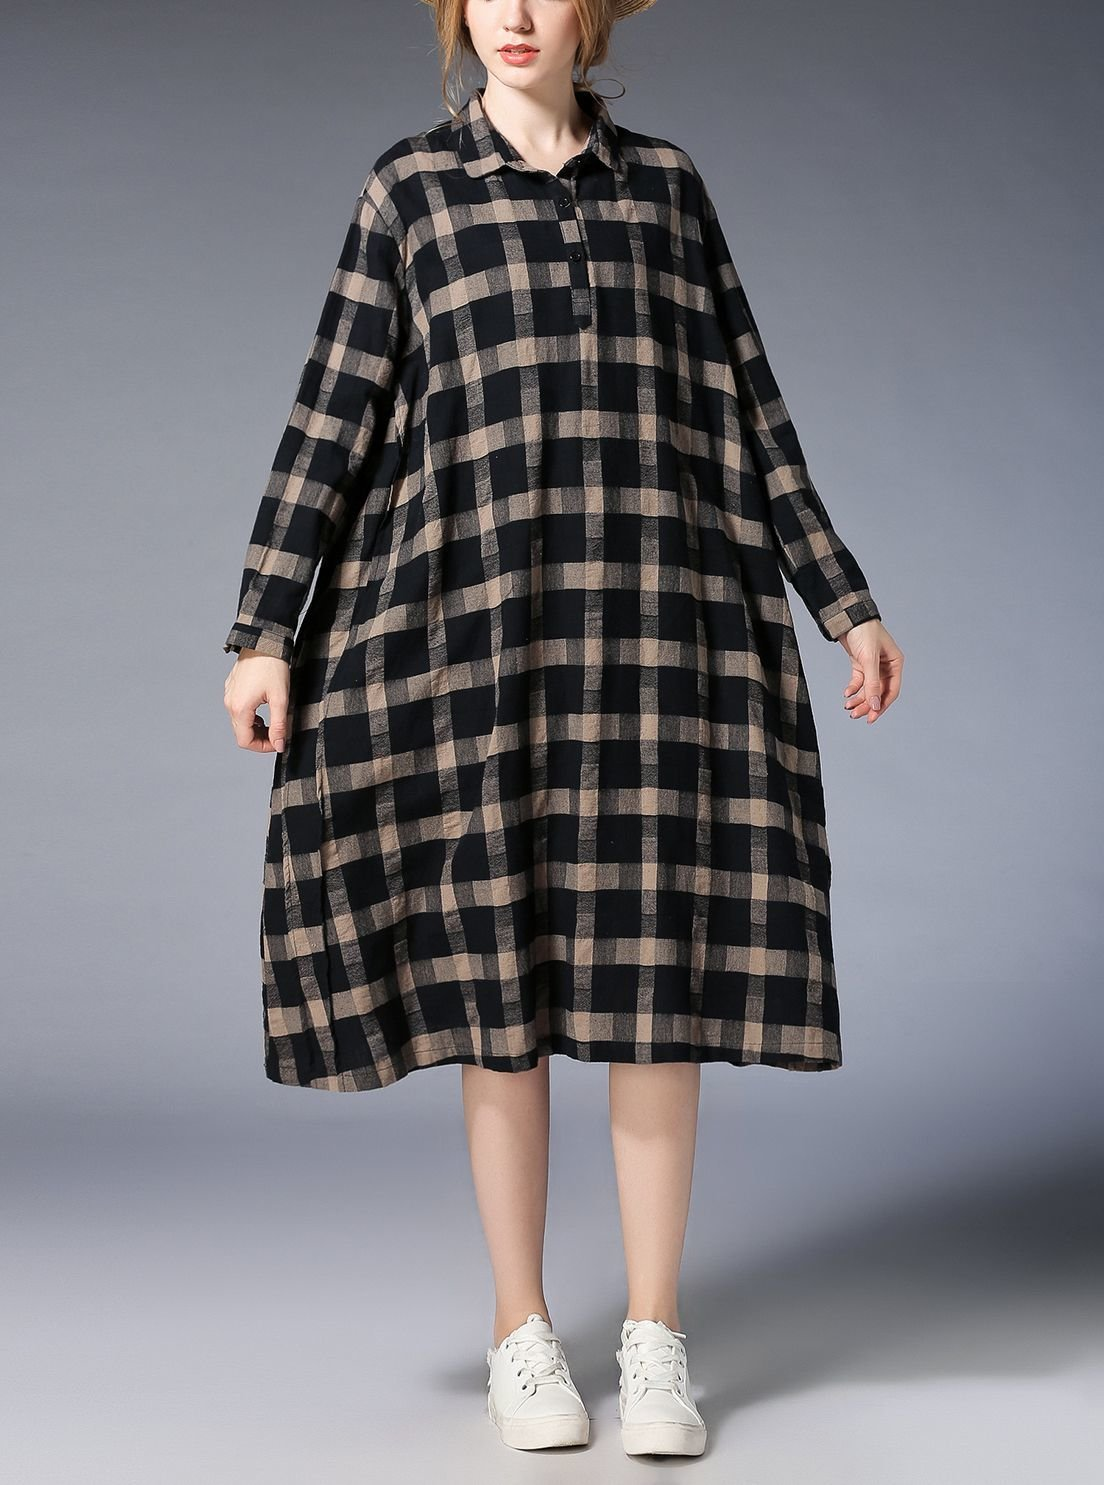 Plaid Casual Dress in Tent Dress Style